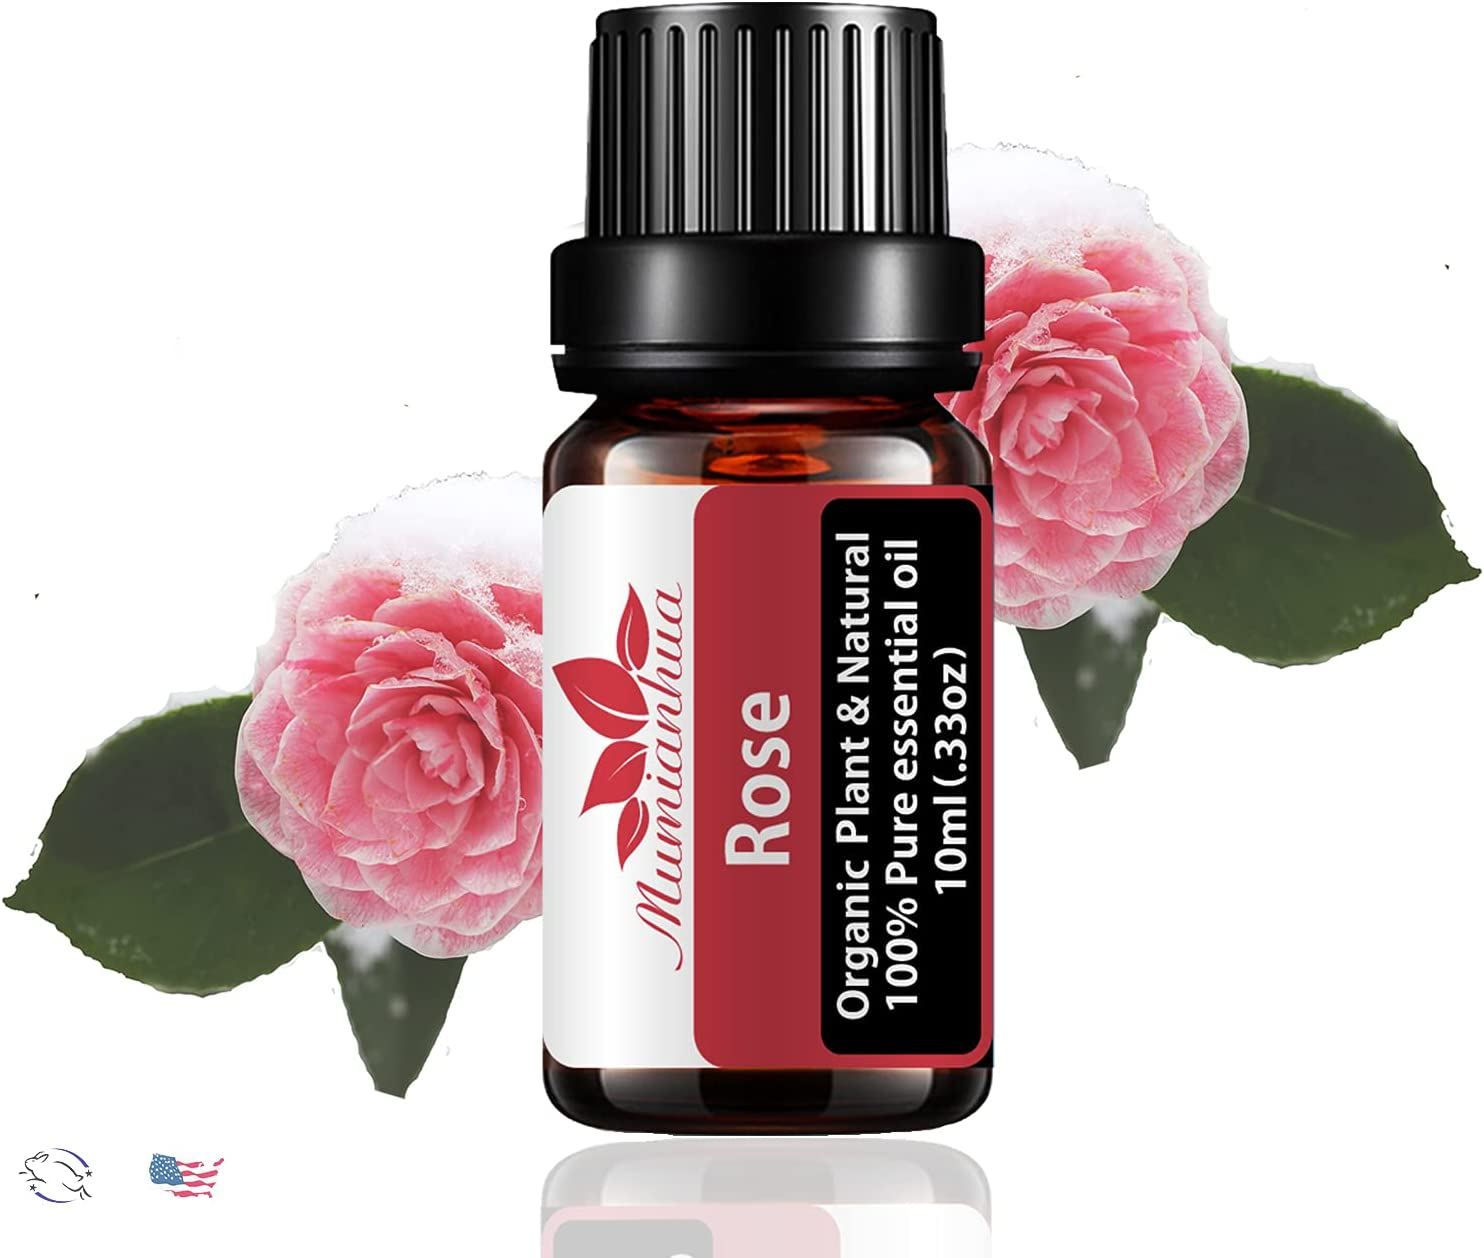 Rose Essential Oil Organic for Diffuser for Home, Therapeutic Grade Aromatherapy Oil for Skin, Prime Pure Essential Oil 10ml for Humidifier